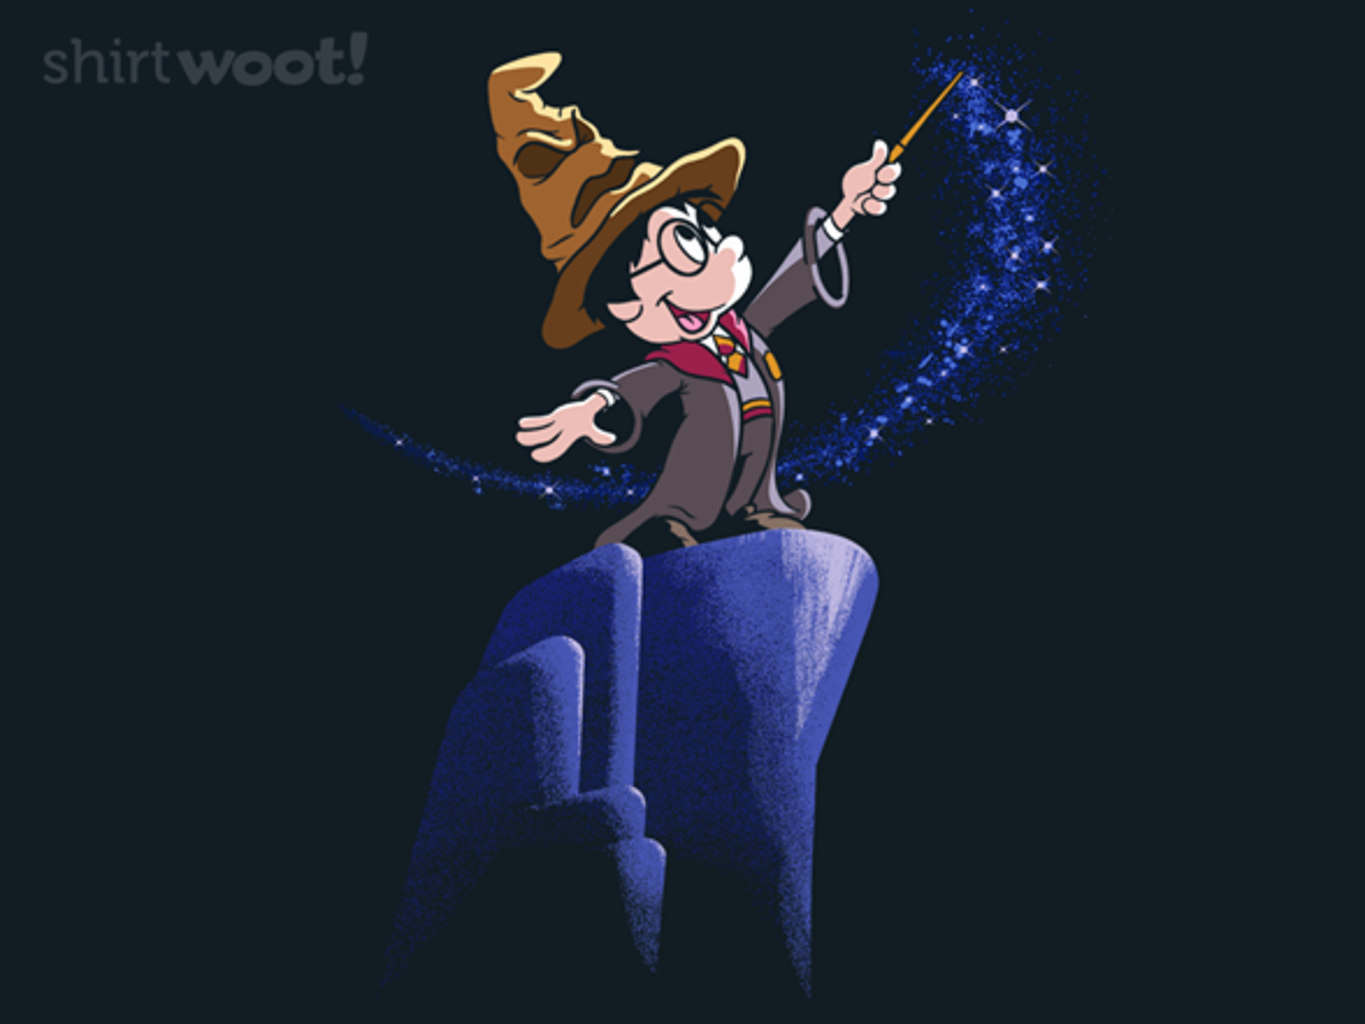 Woot!: The Wizard's Apprentice - $15.00 + Free shipping